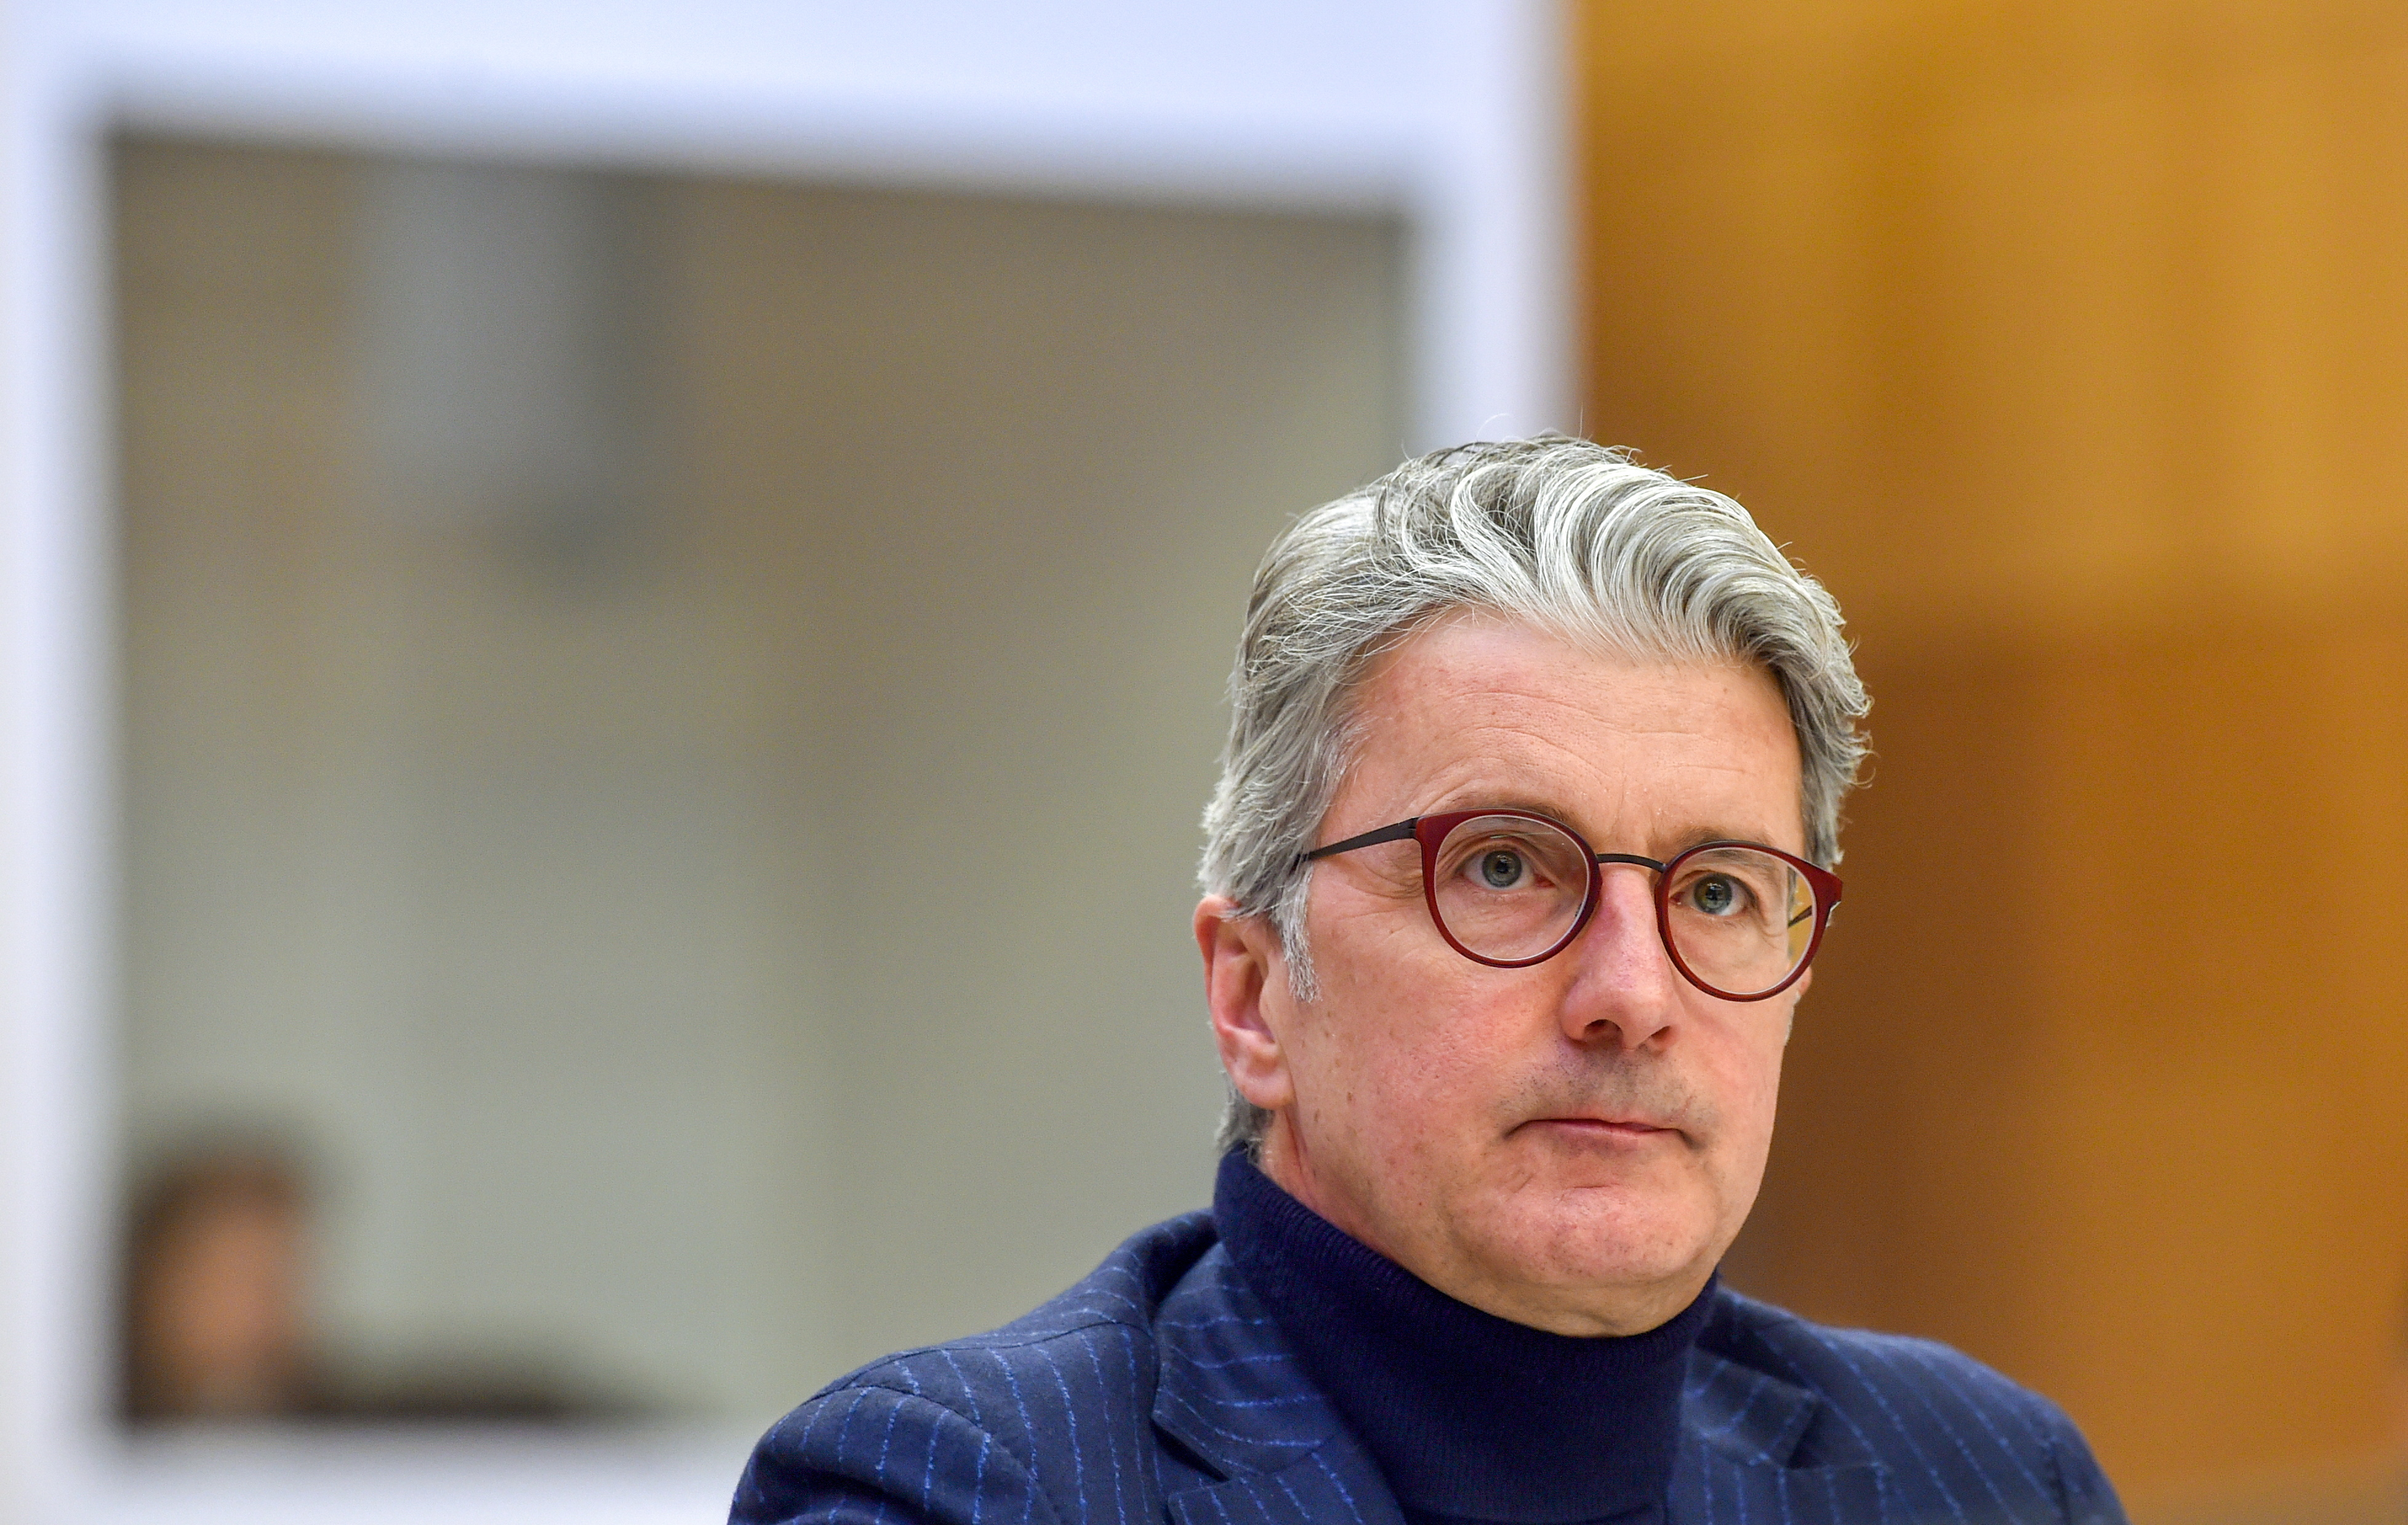 Rupert Stadler, former CEO of German car manufacturer Audi, waits for the start of a trial day at the regional court in Munich, Germany January 12, 2021. Christof Stache/Pool via REUTERS